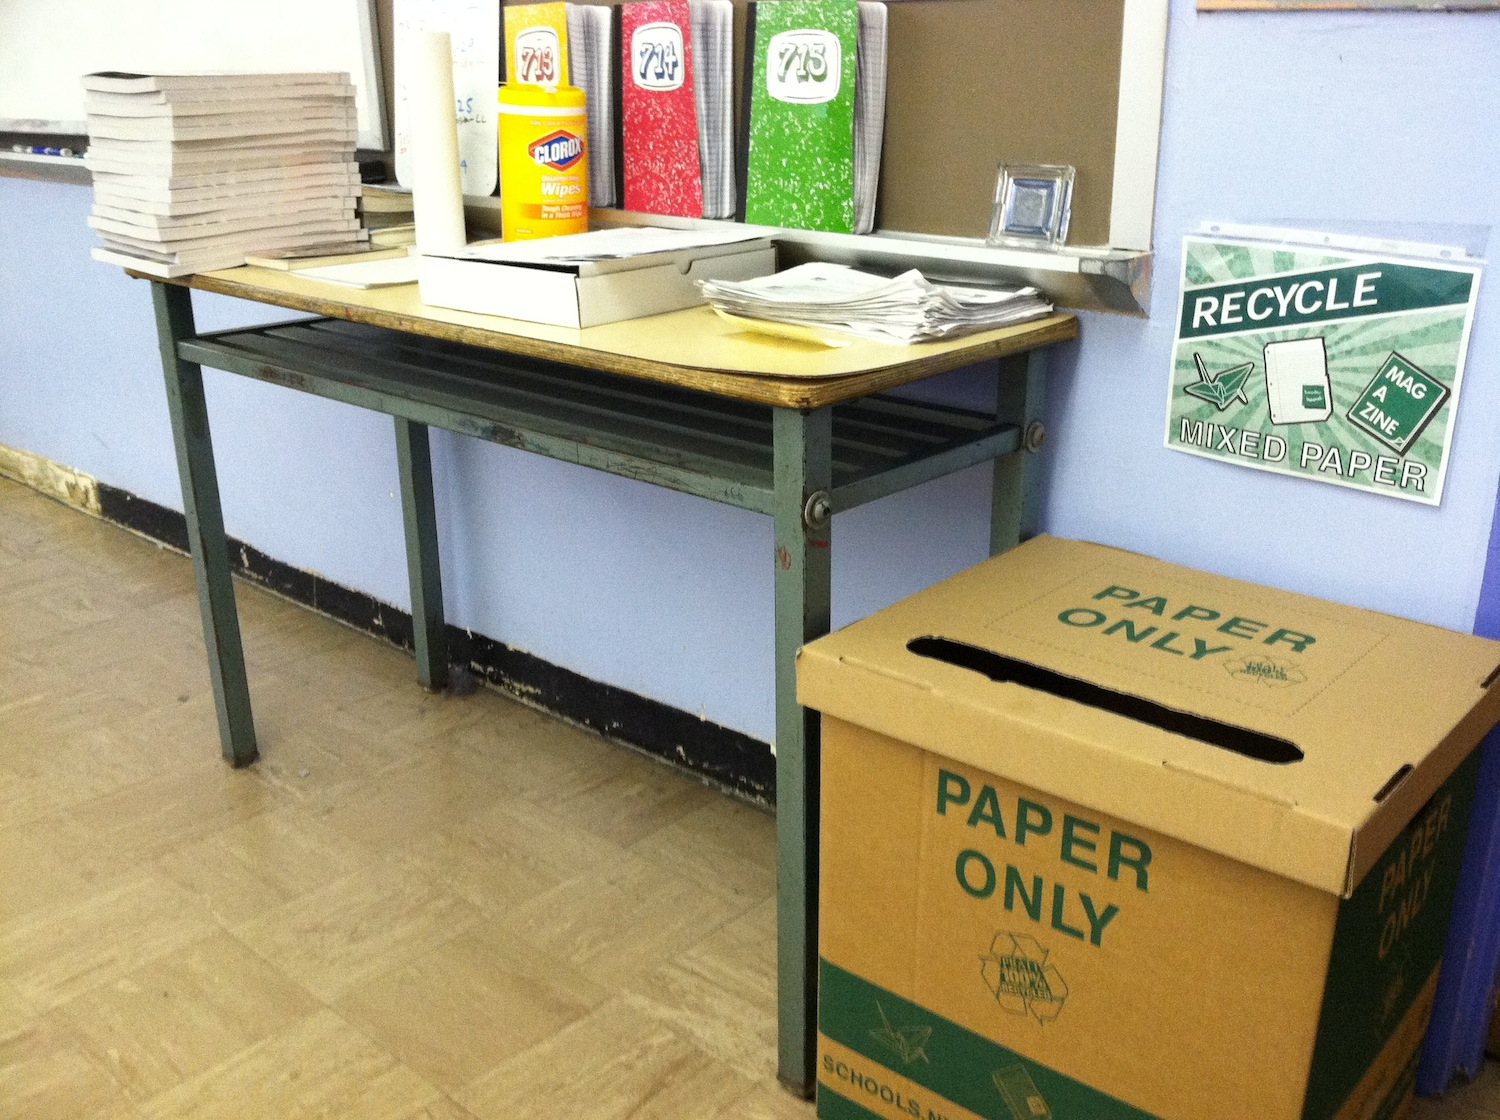 Recycling in Schools - Pratt Industries Makes It Possible!